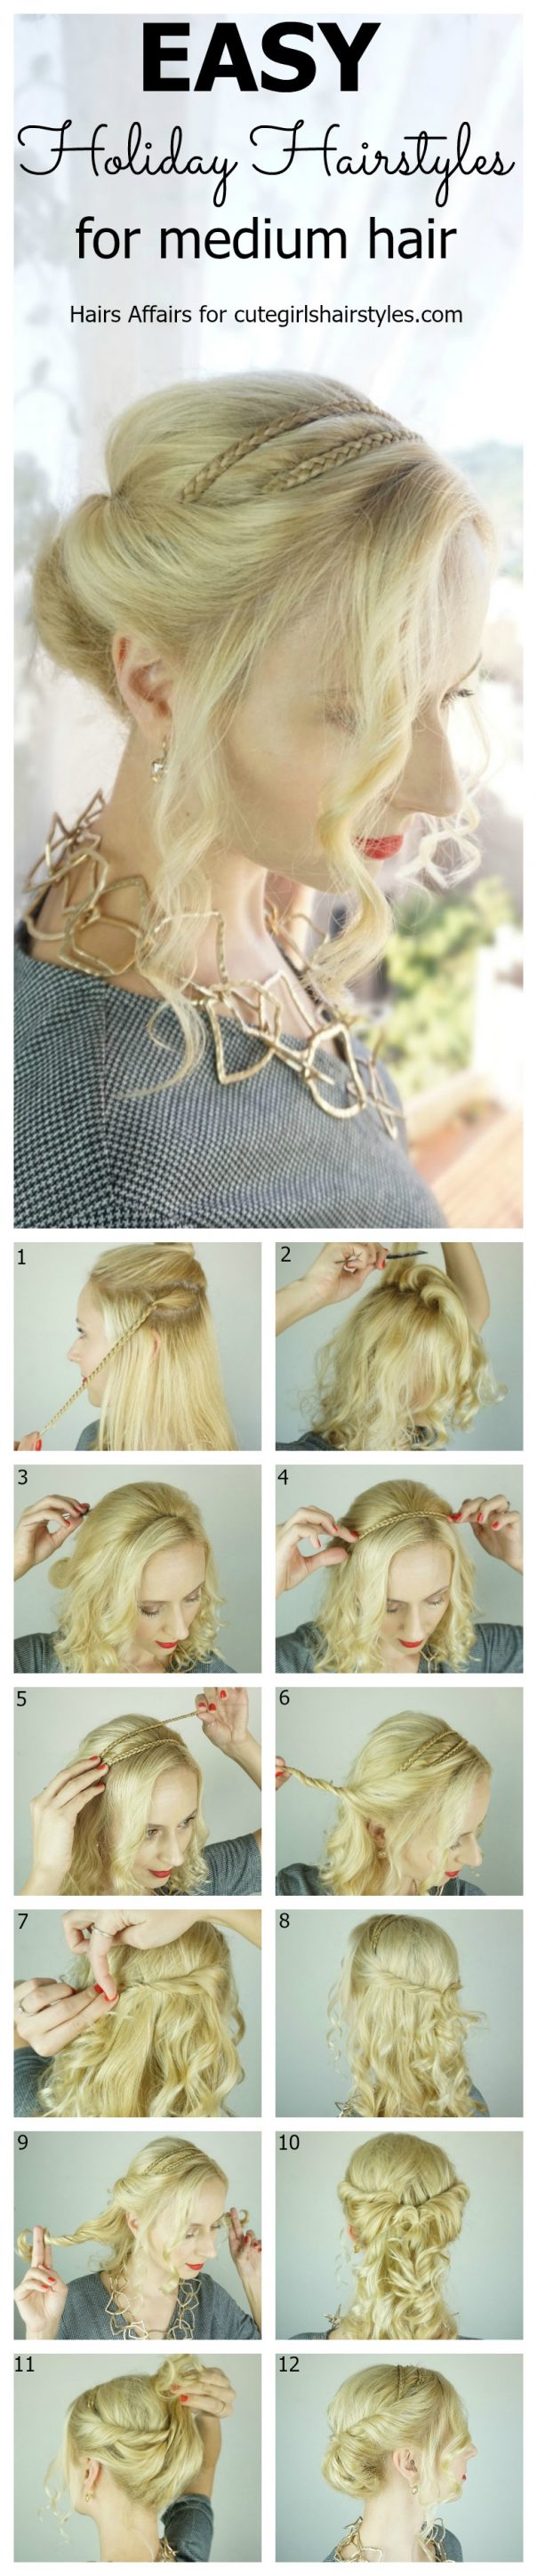 10-step how-to graphic on Easy Holiday Hairstyle